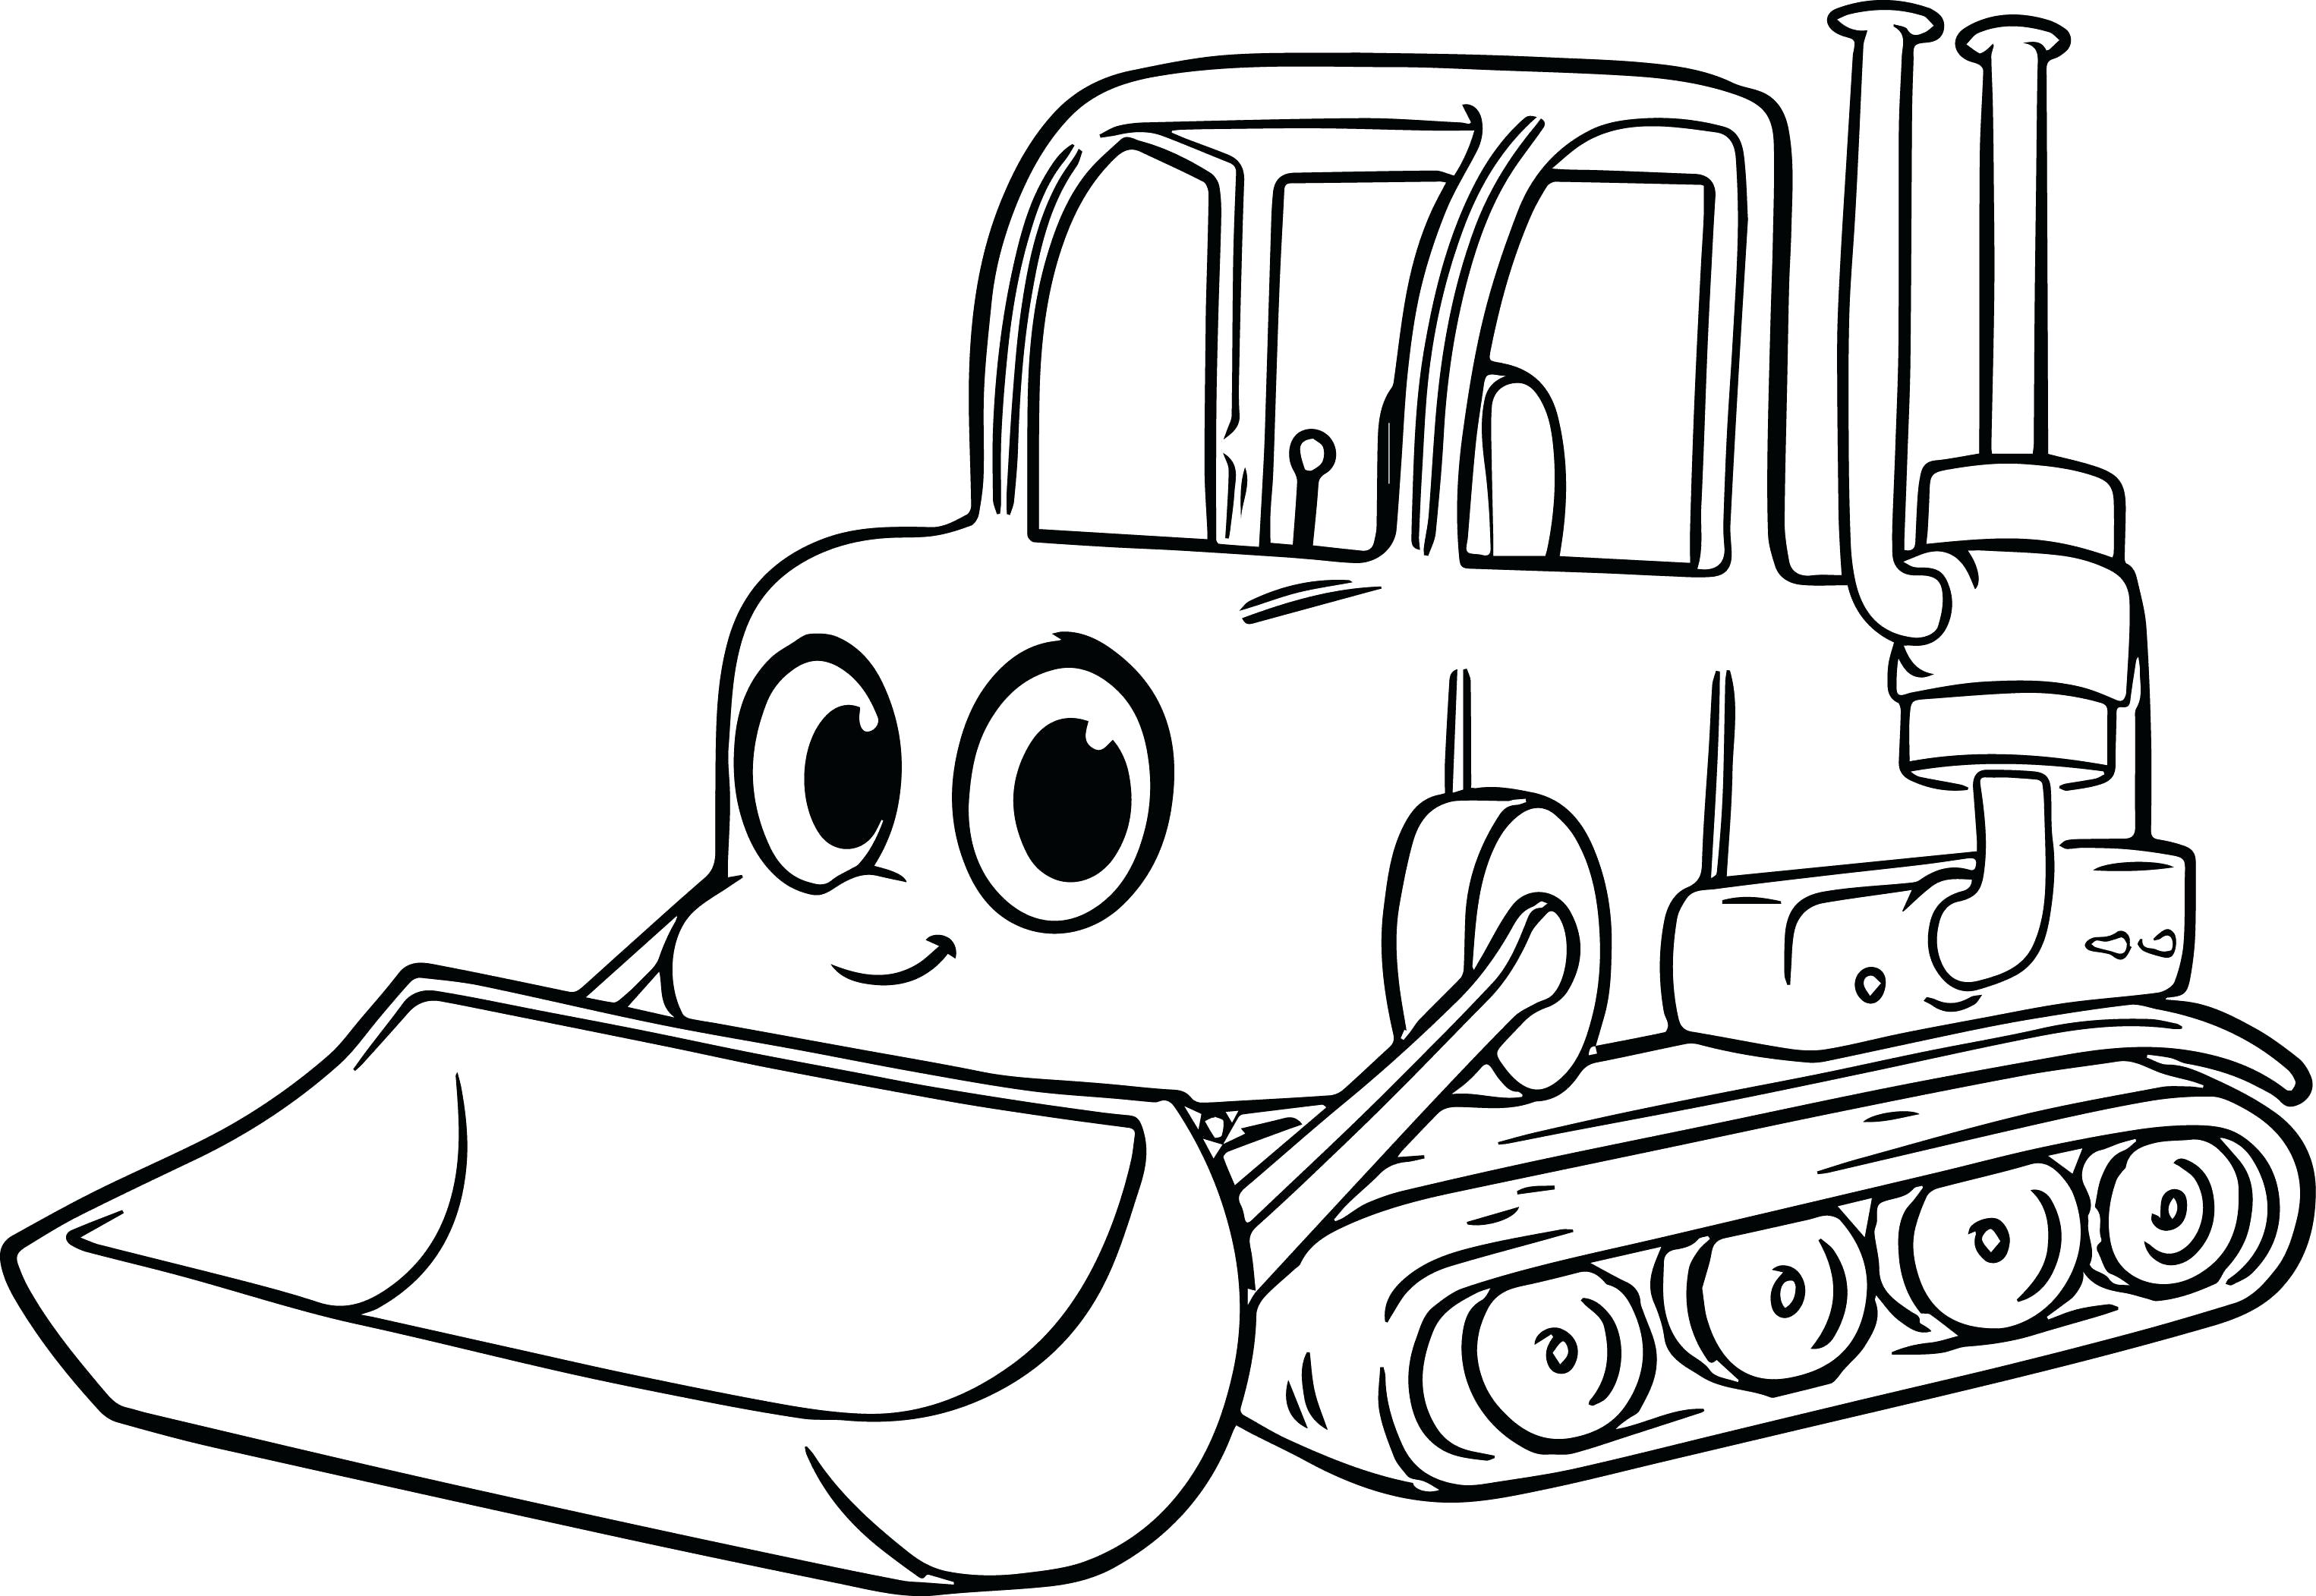 - Excavator Coloring Pages - Coloring Home